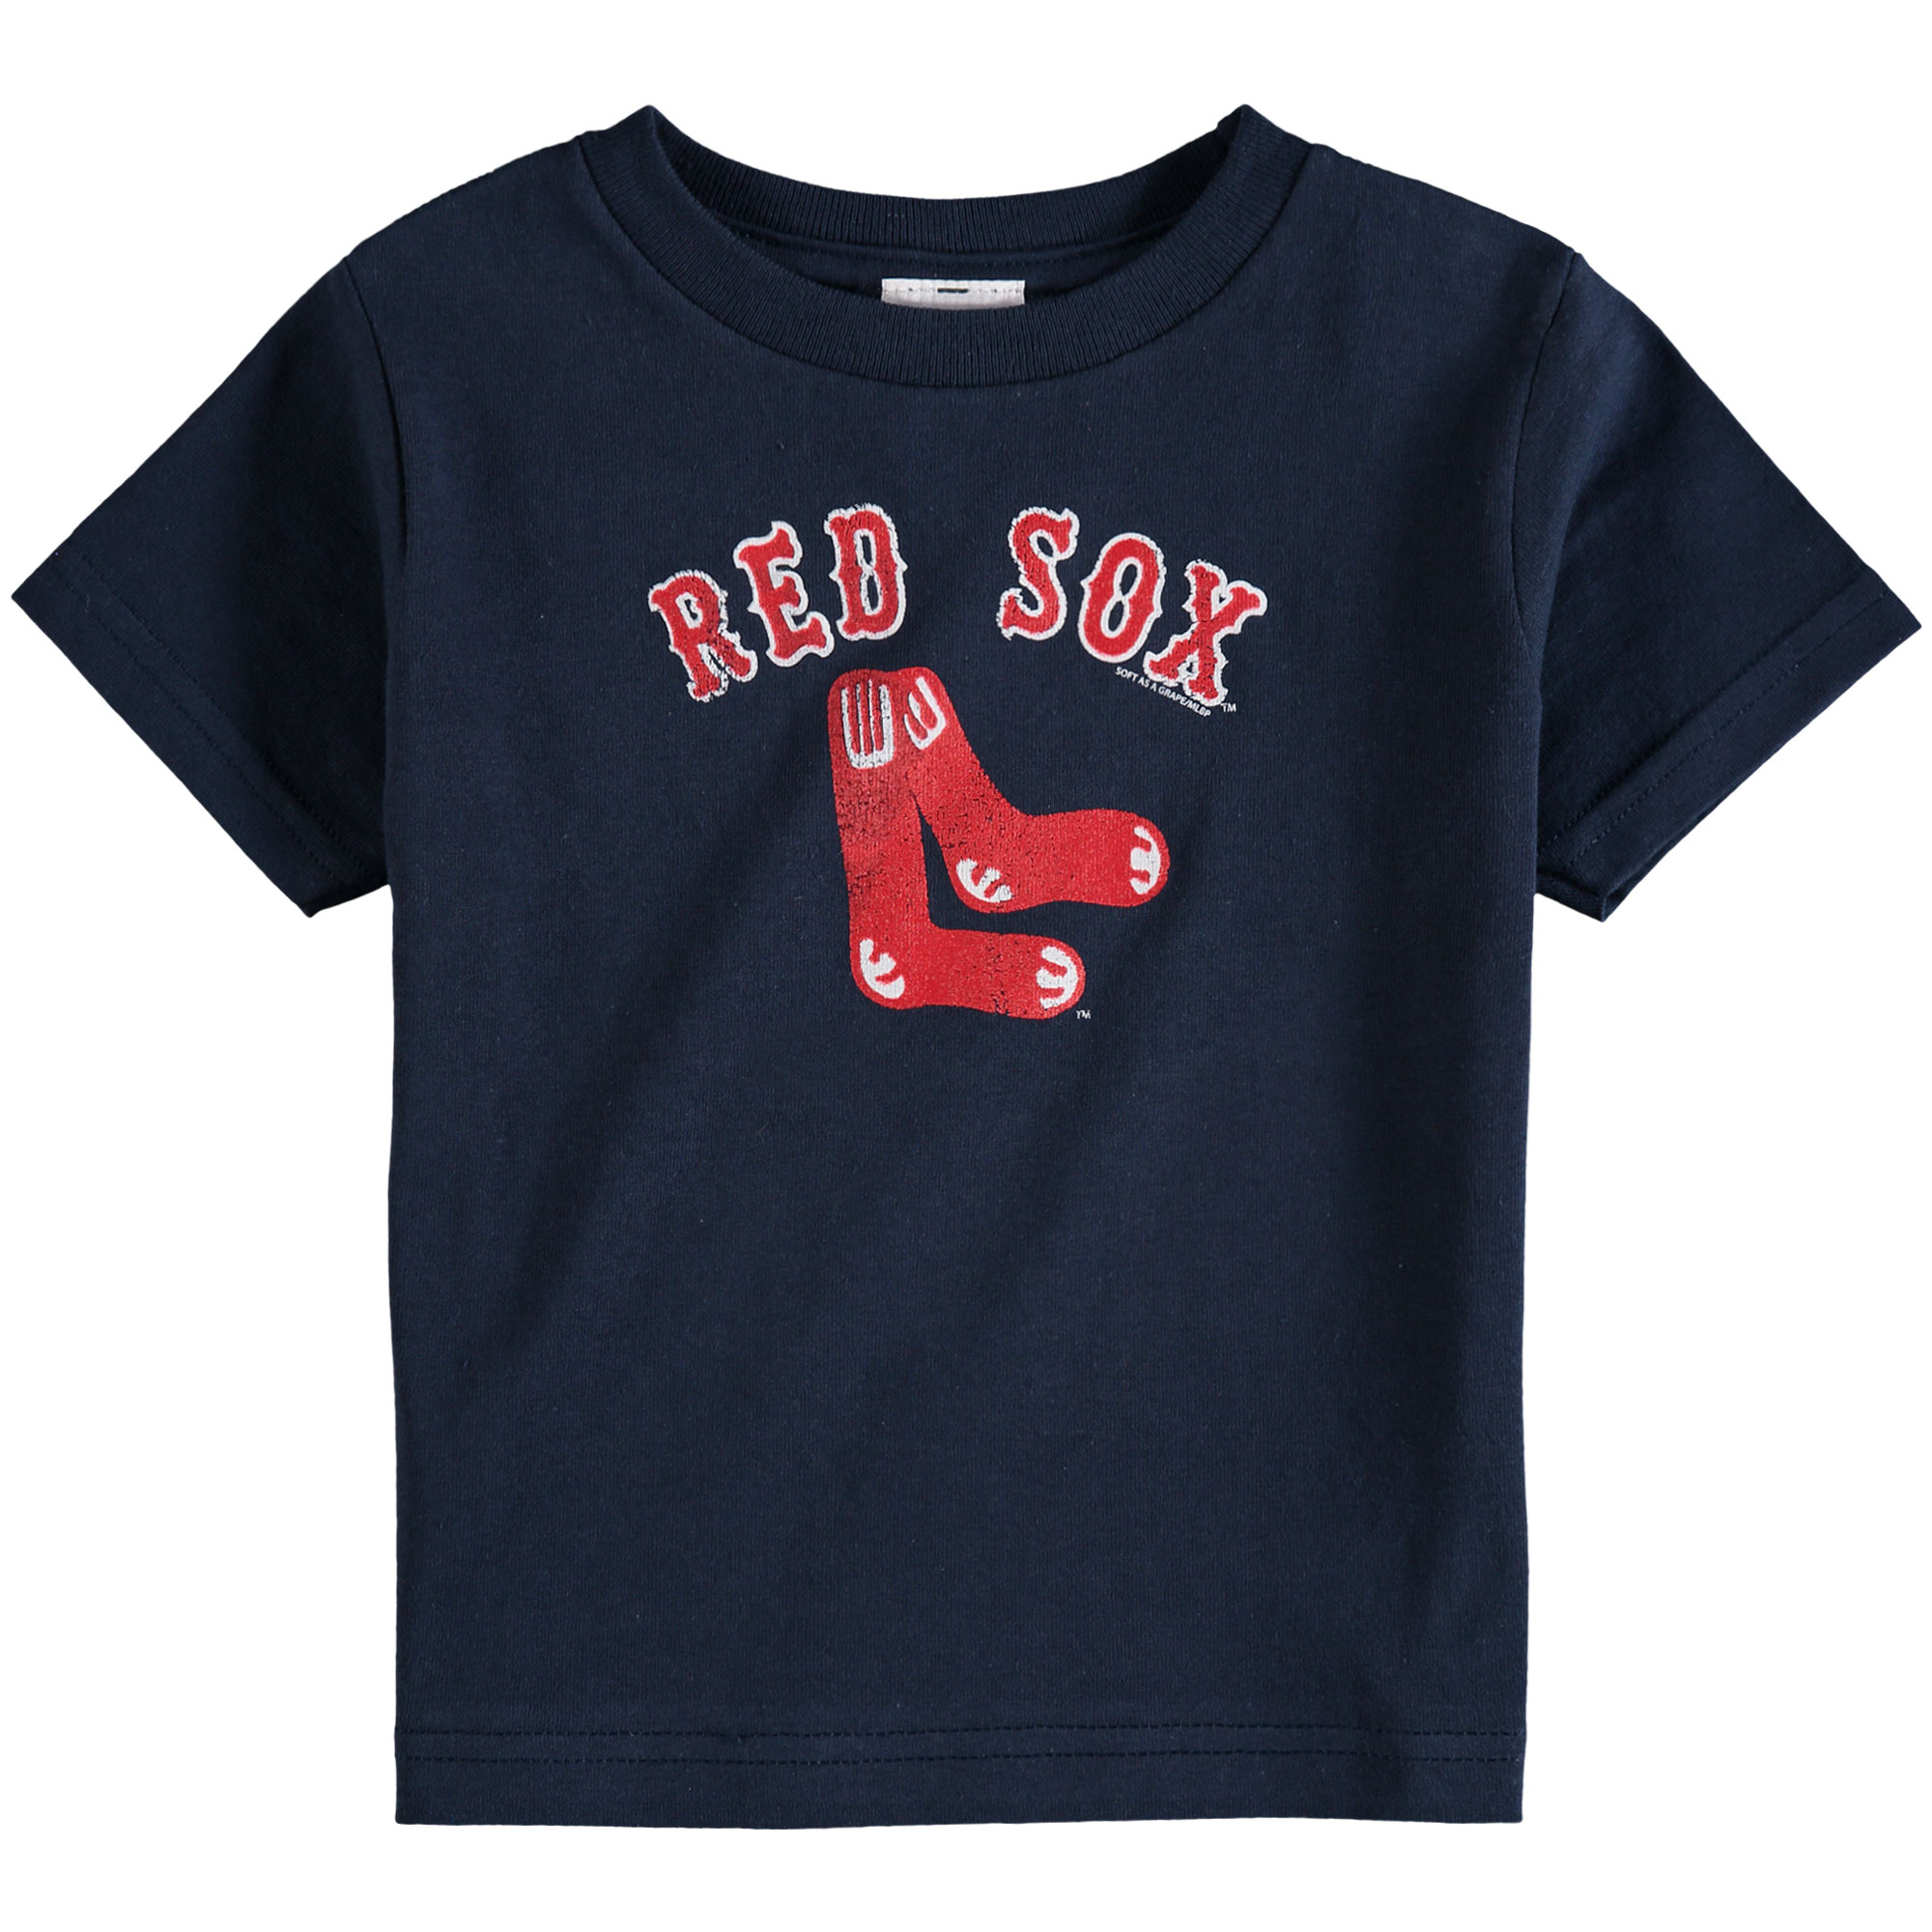 Boston Red Sox Soft As A Grape Toddler Cooperstown Collection Shutout T-Shirt - Navy